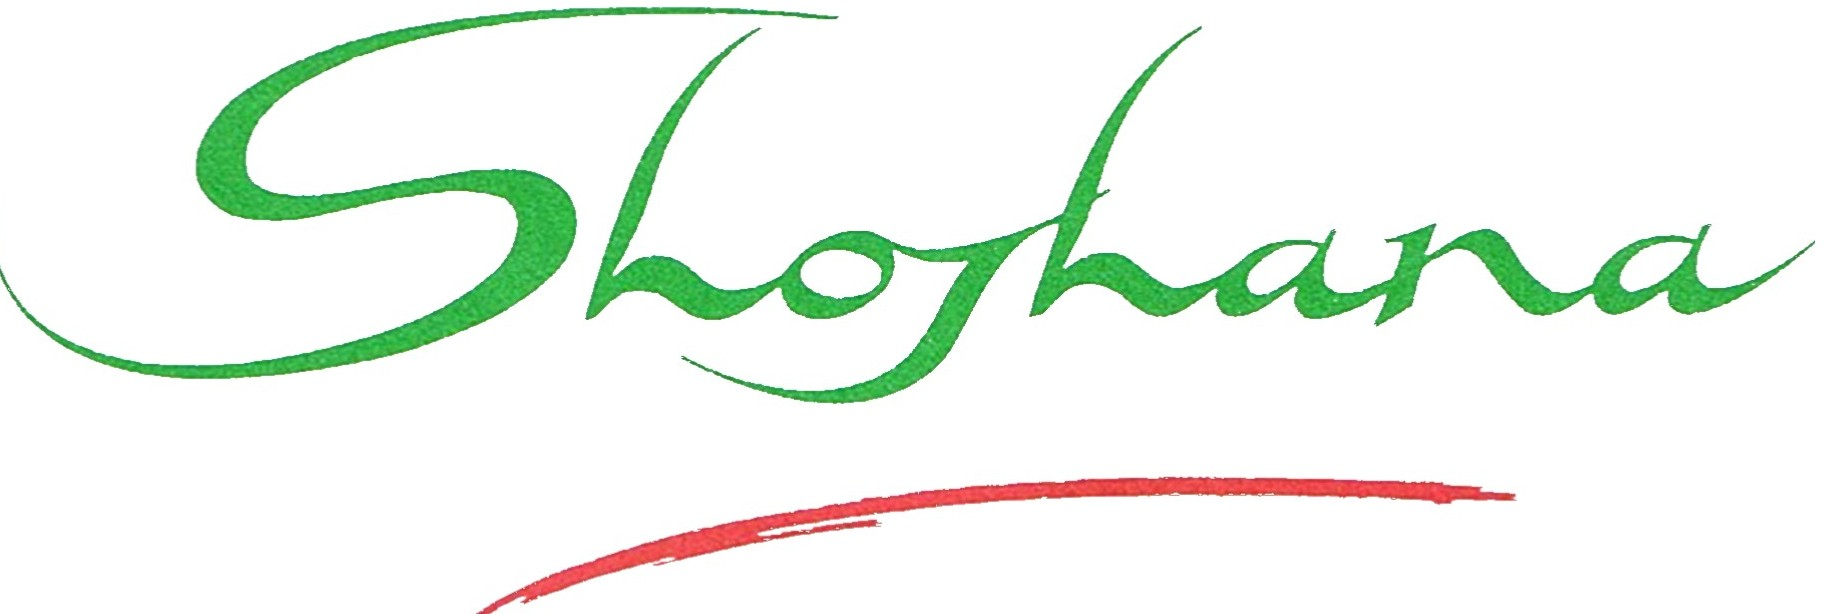 Copy of Shoshana Logo 1